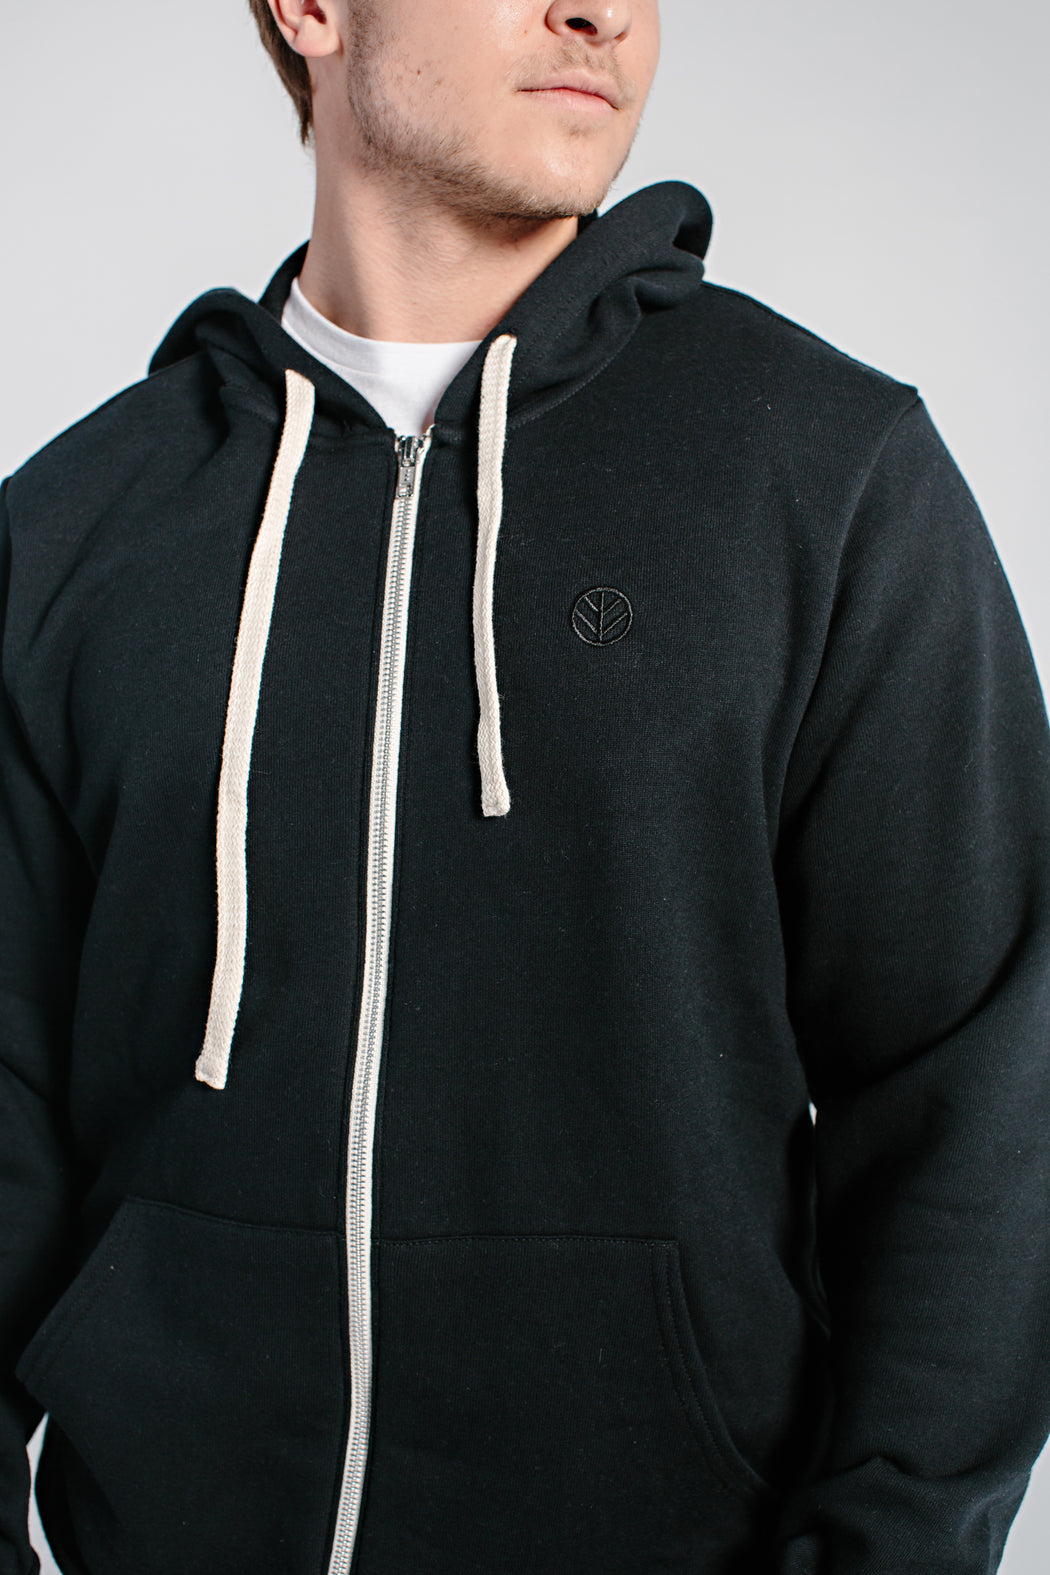 Embroidered Zip Hoodie - DOJA Cannabis